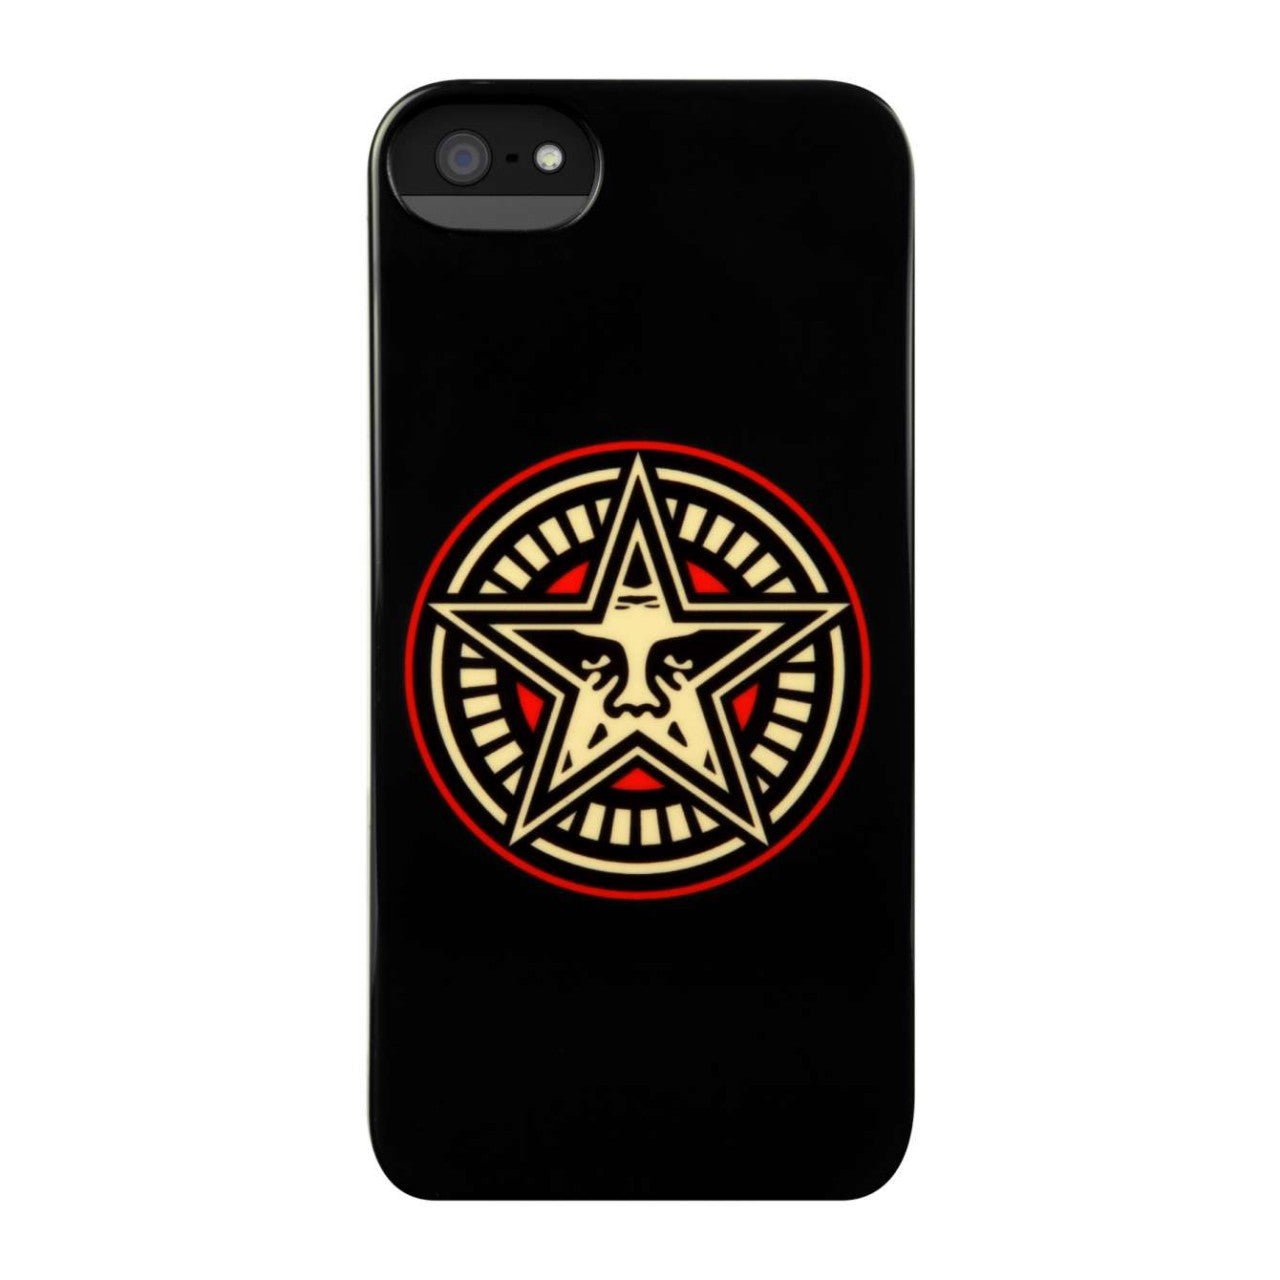 Incase x Shepard Fairey - Star Gear Case for iPhone 5 - The Giant Peach